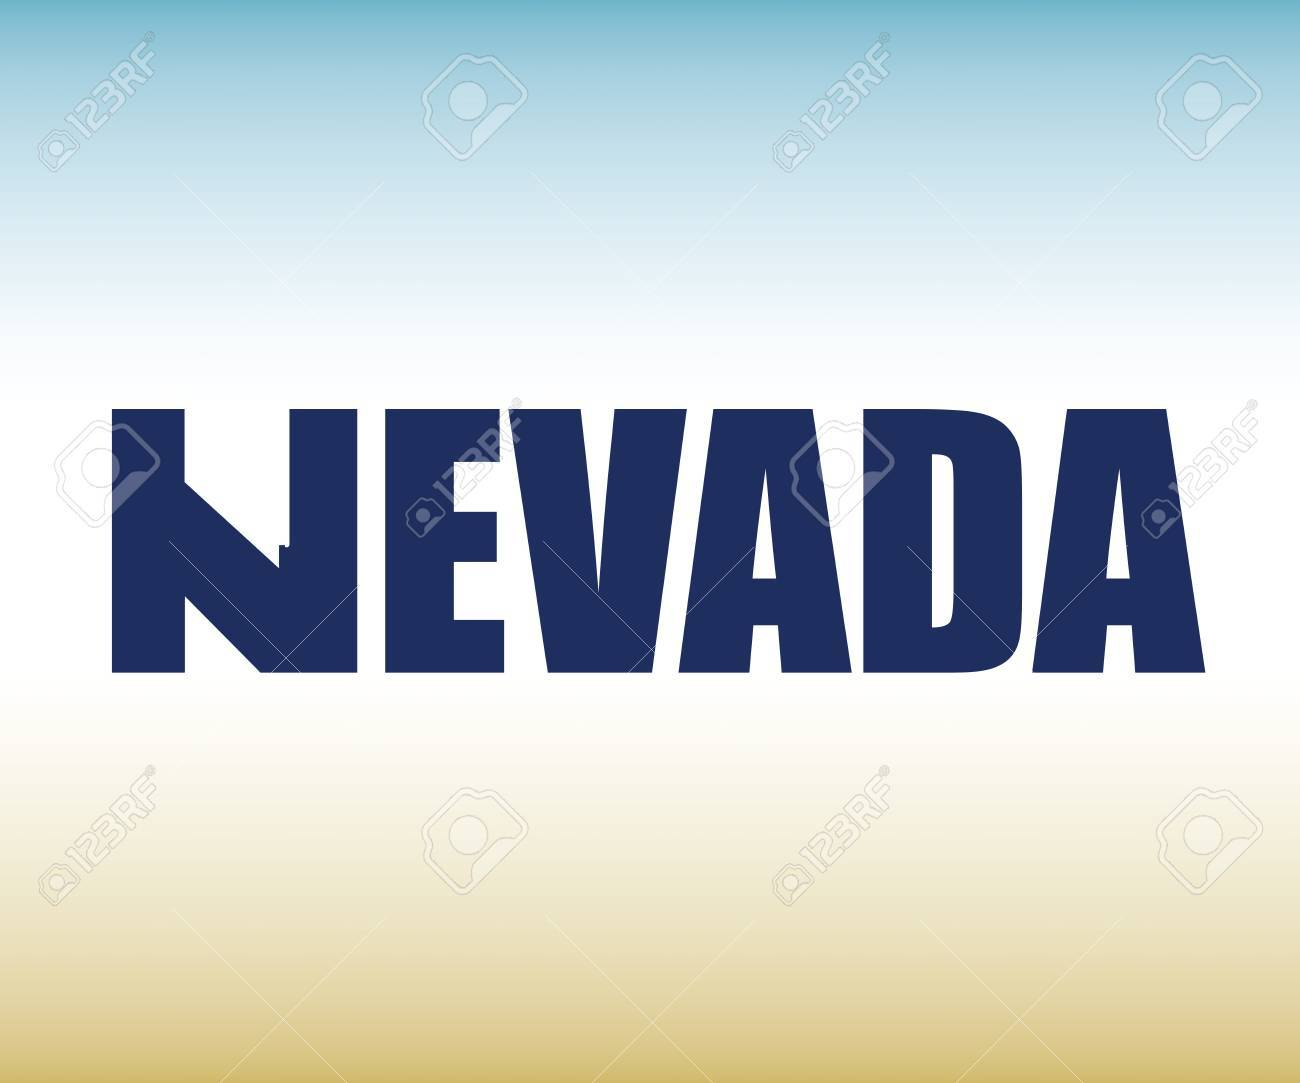 The Nevada Shape Is Within The Nevada Name Royalty Free Cliparts Vectors And Stock Illustration Image 63045143